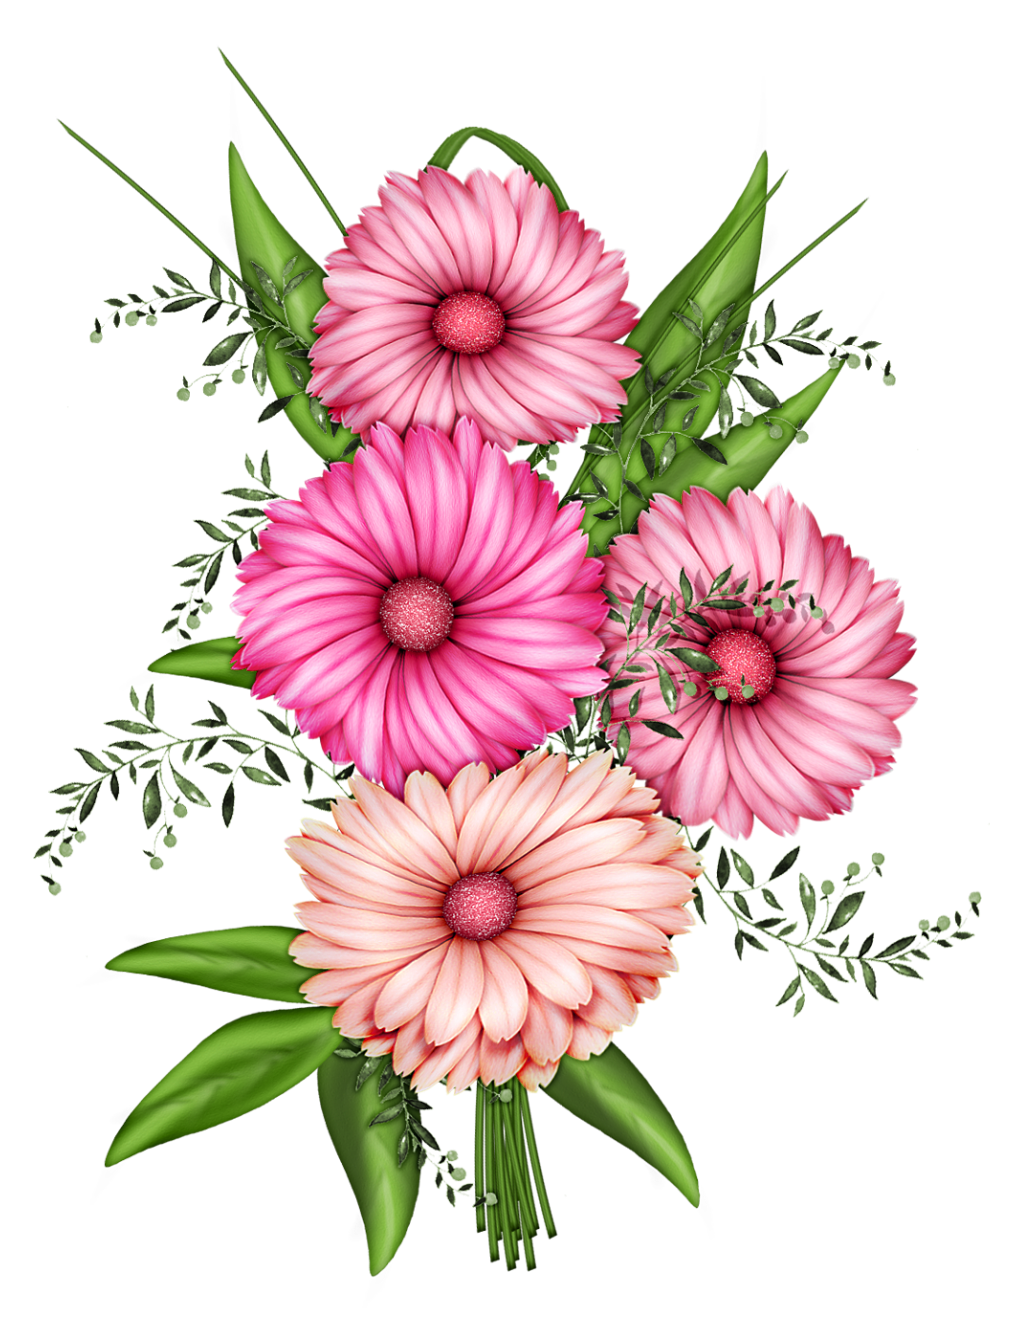 hight resolution of flower images flower photos flowers nature purple flowers beautiful flowers paper